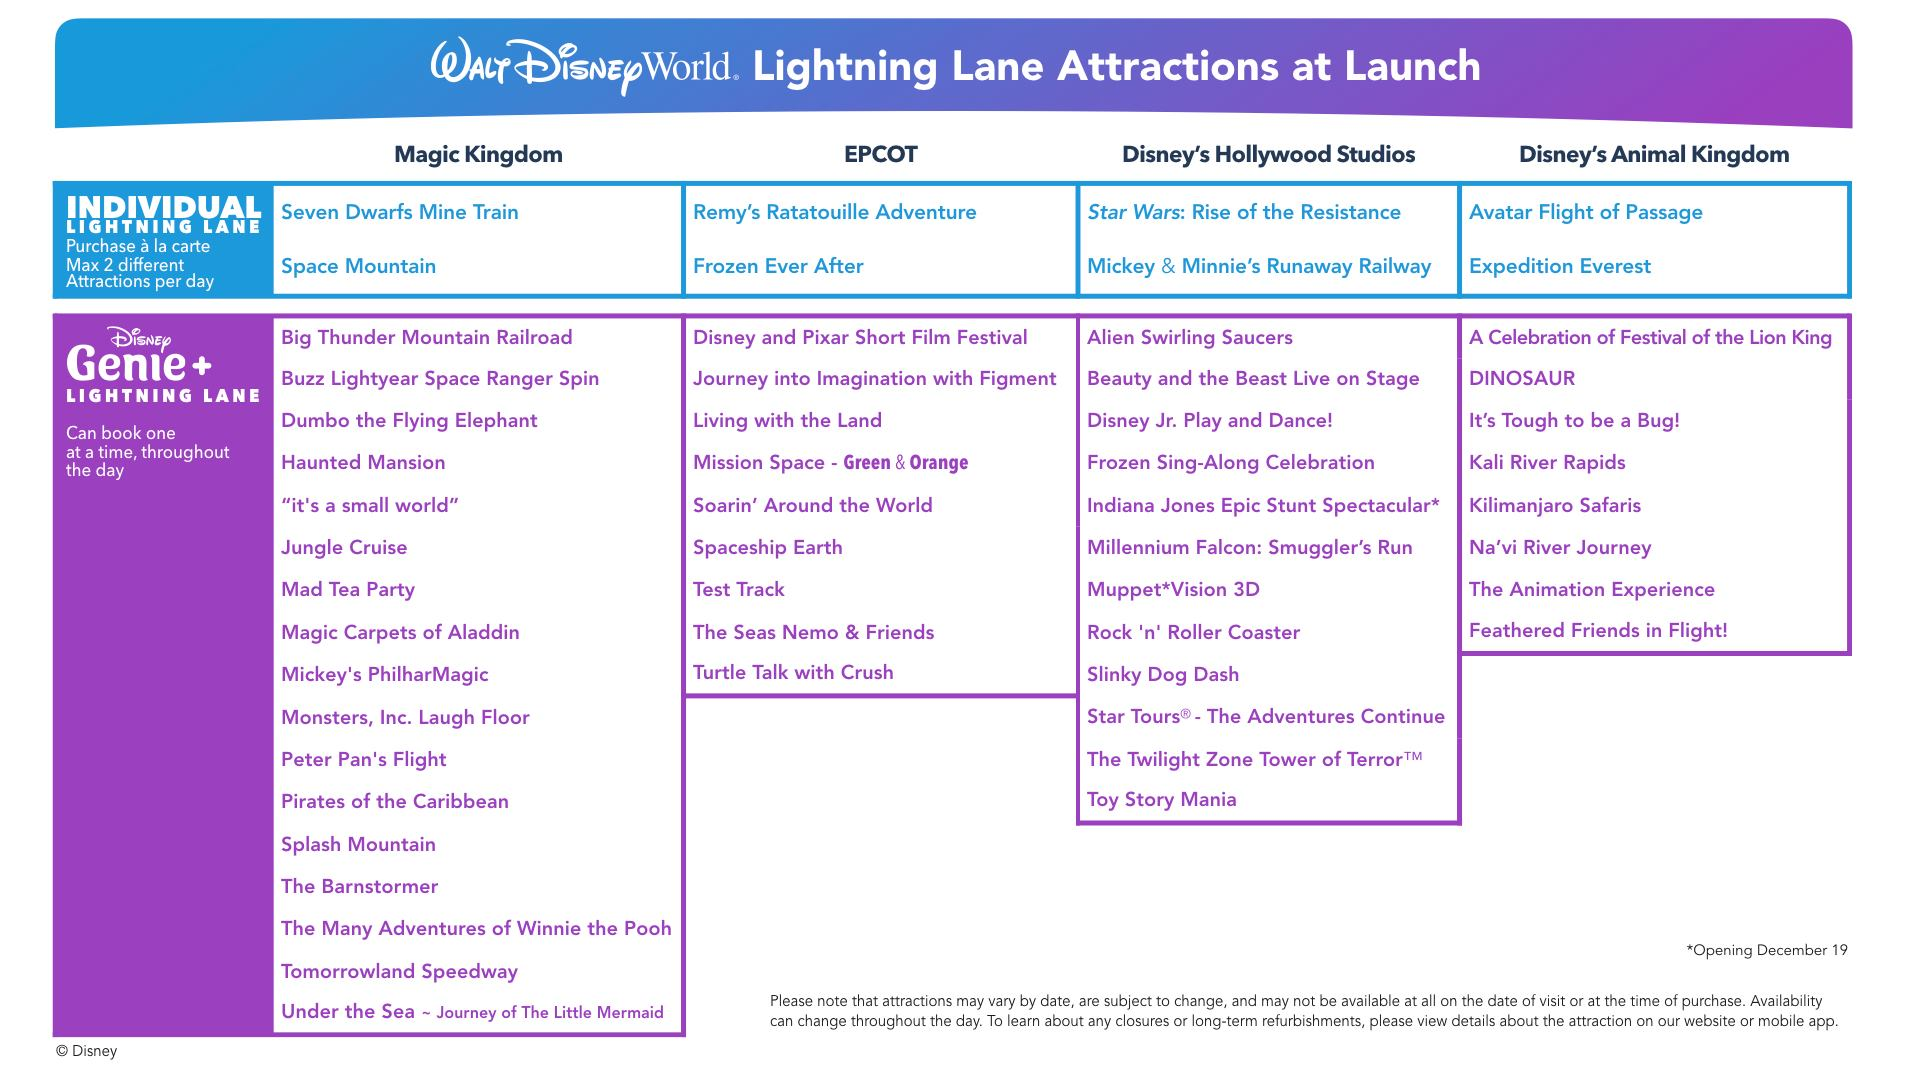 Lightning Lane attractions at launch